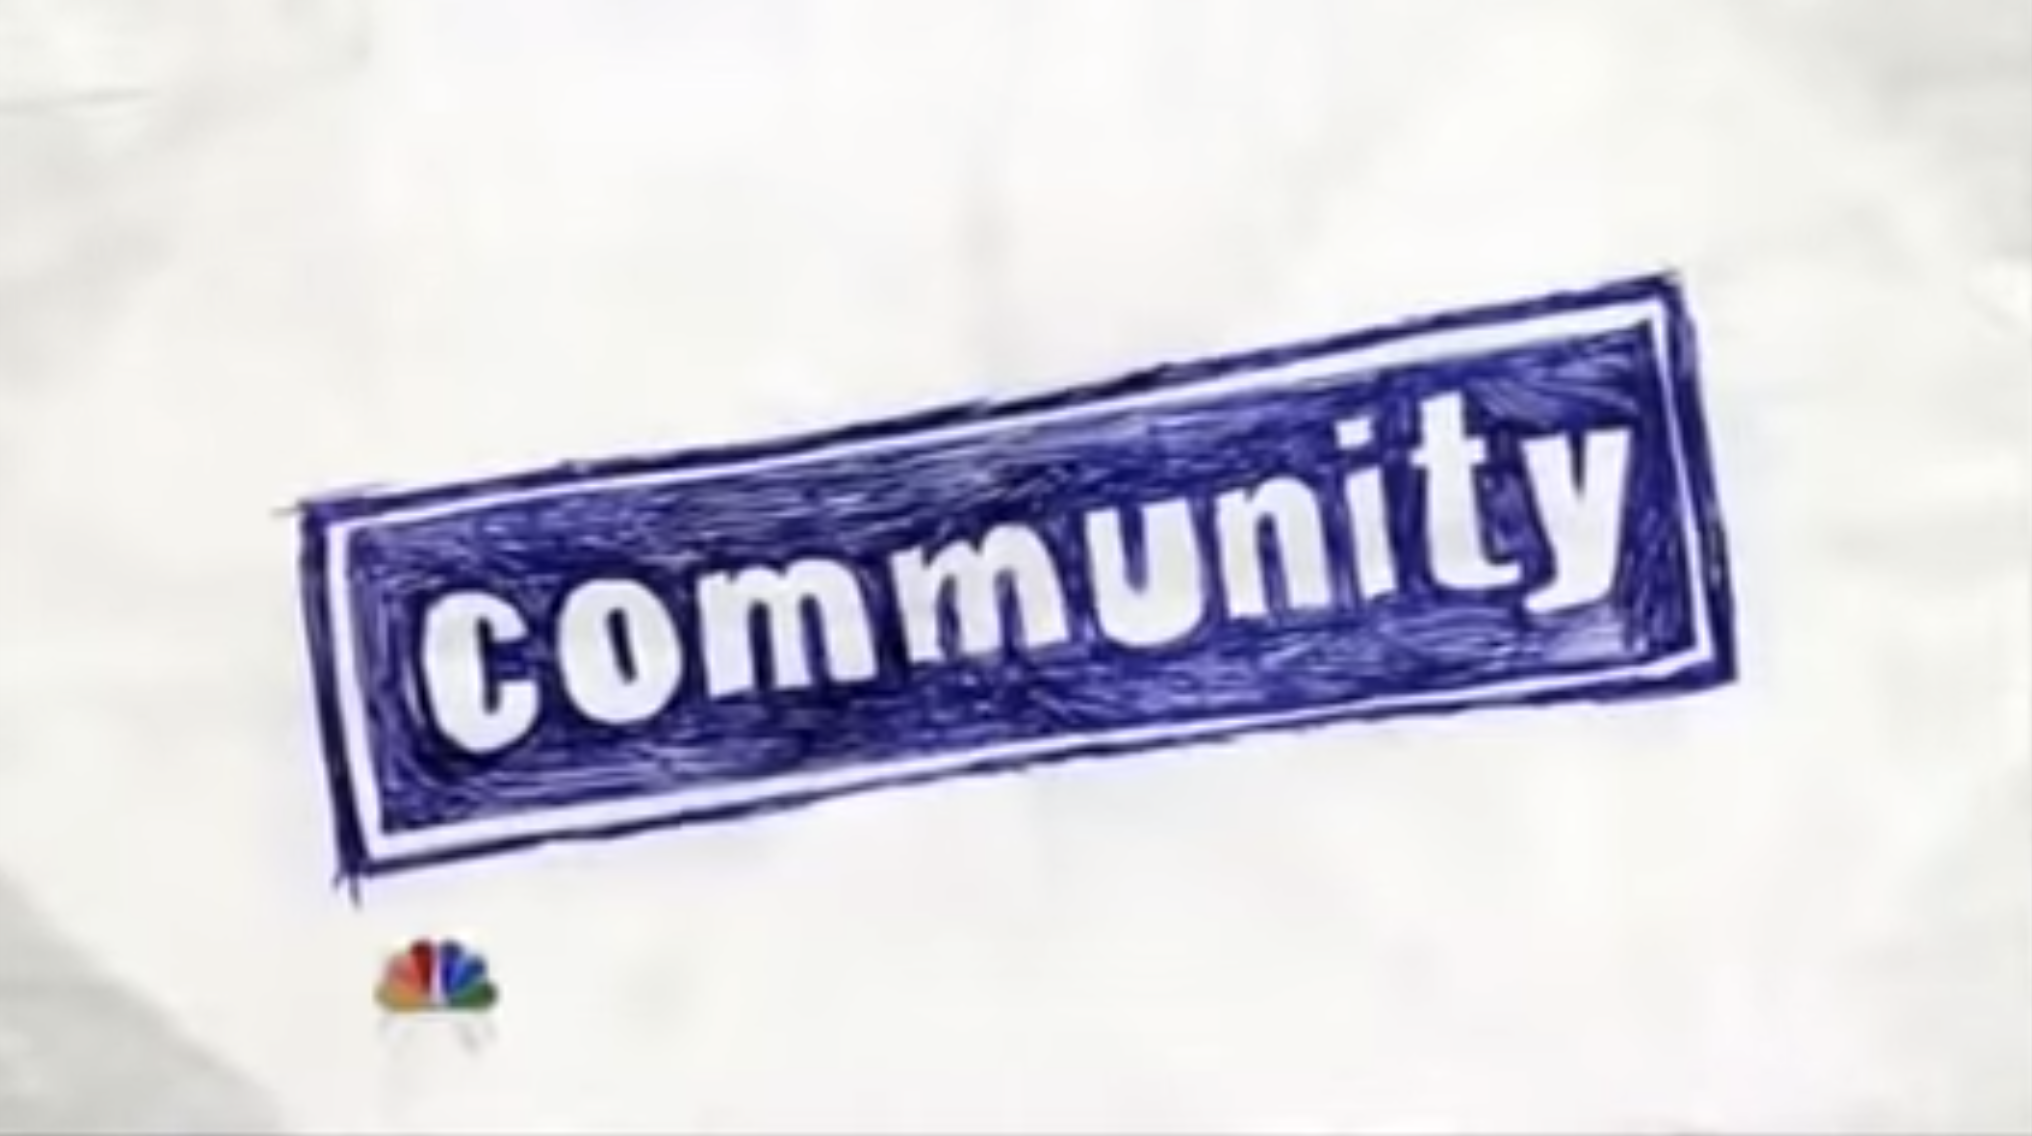 """Community"" title card — which is the title of the show in blue ink on a white sheet of paper."